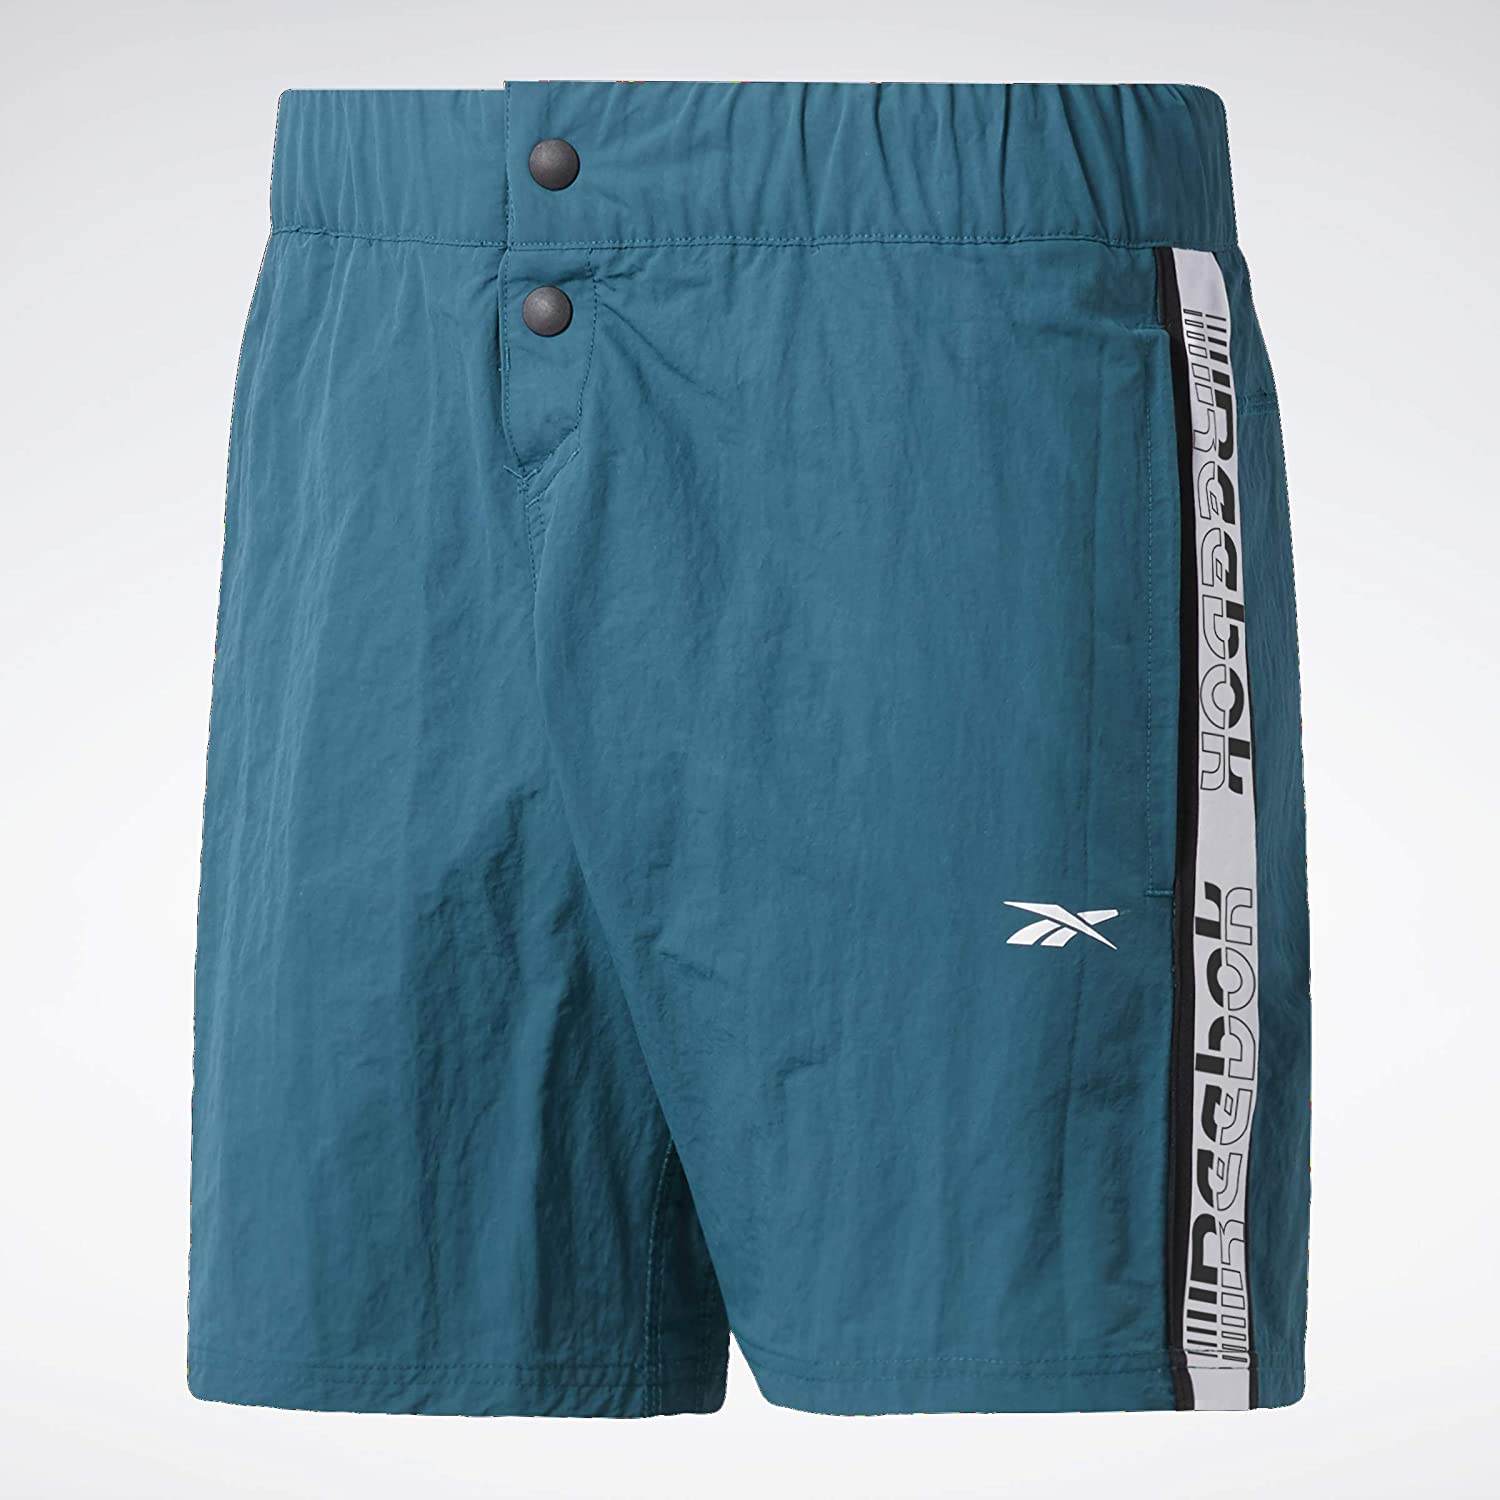 Reebok Men's Meet You Wovevn Short There 2021 Large discharge sale